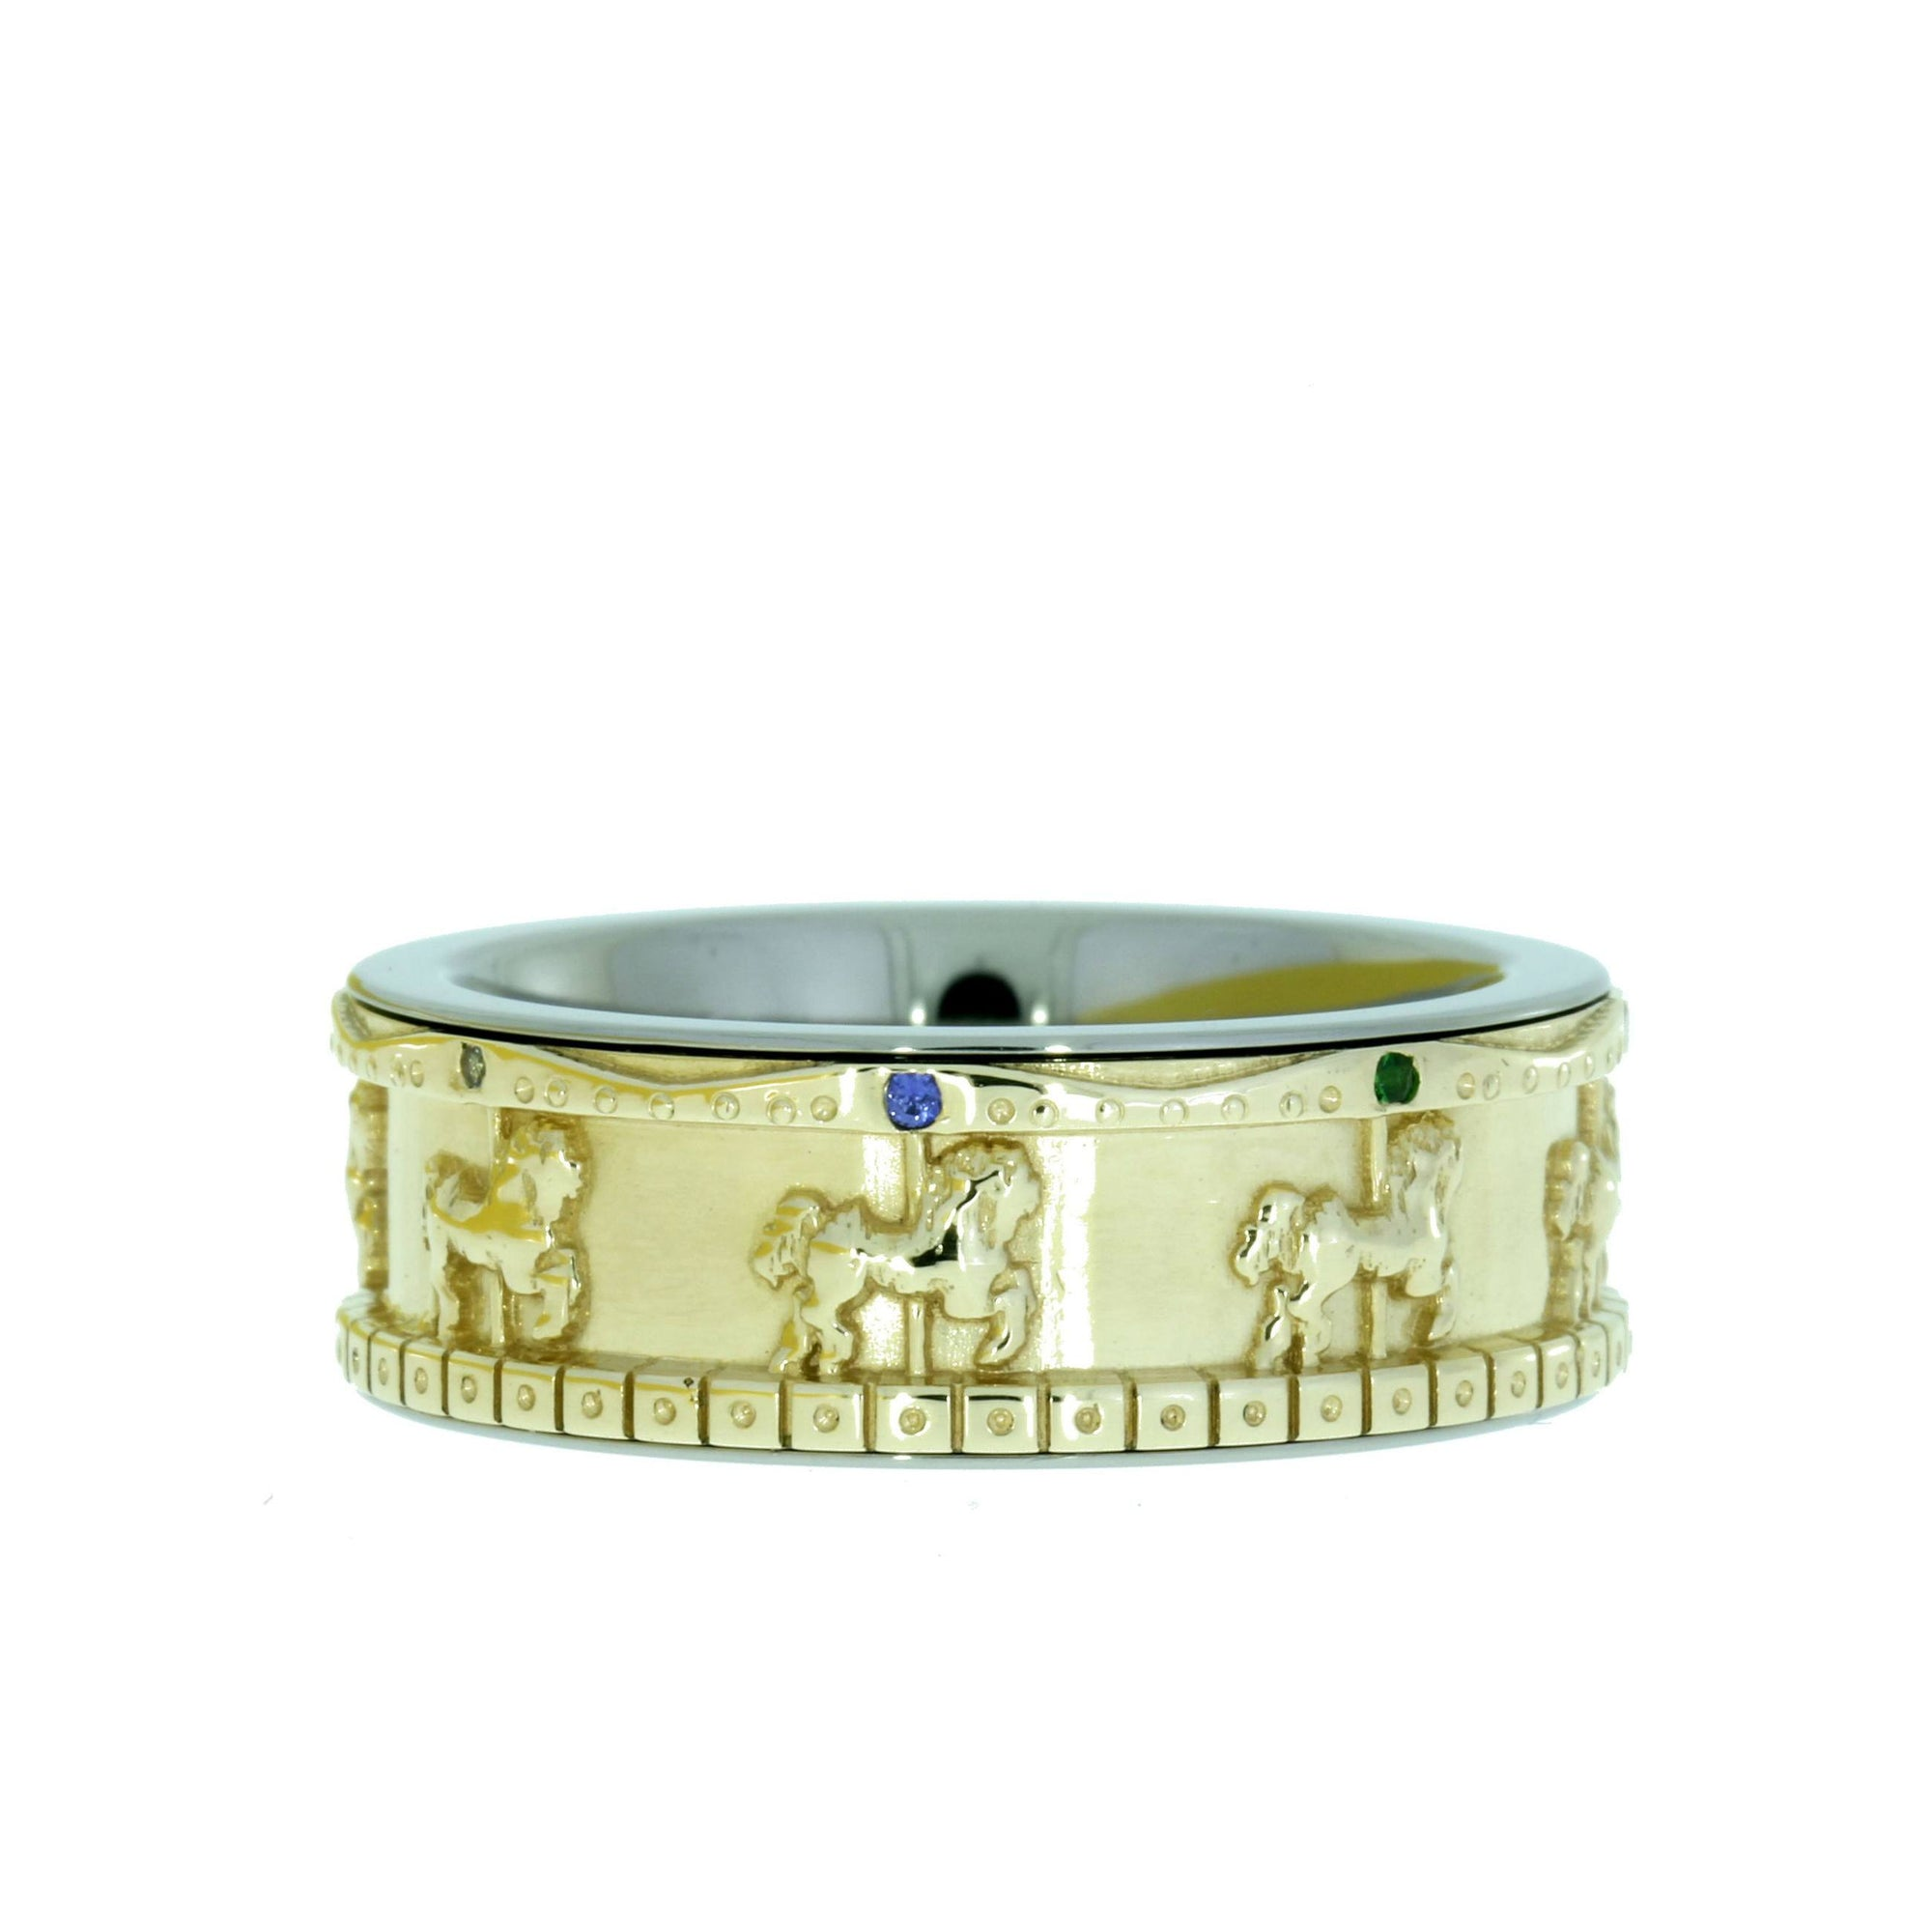 Old-Fashioned Carousel Ring, Yellow Gold Merry-Go-Round Ring with Colorful Stones-1511 - Jewelry by Johan